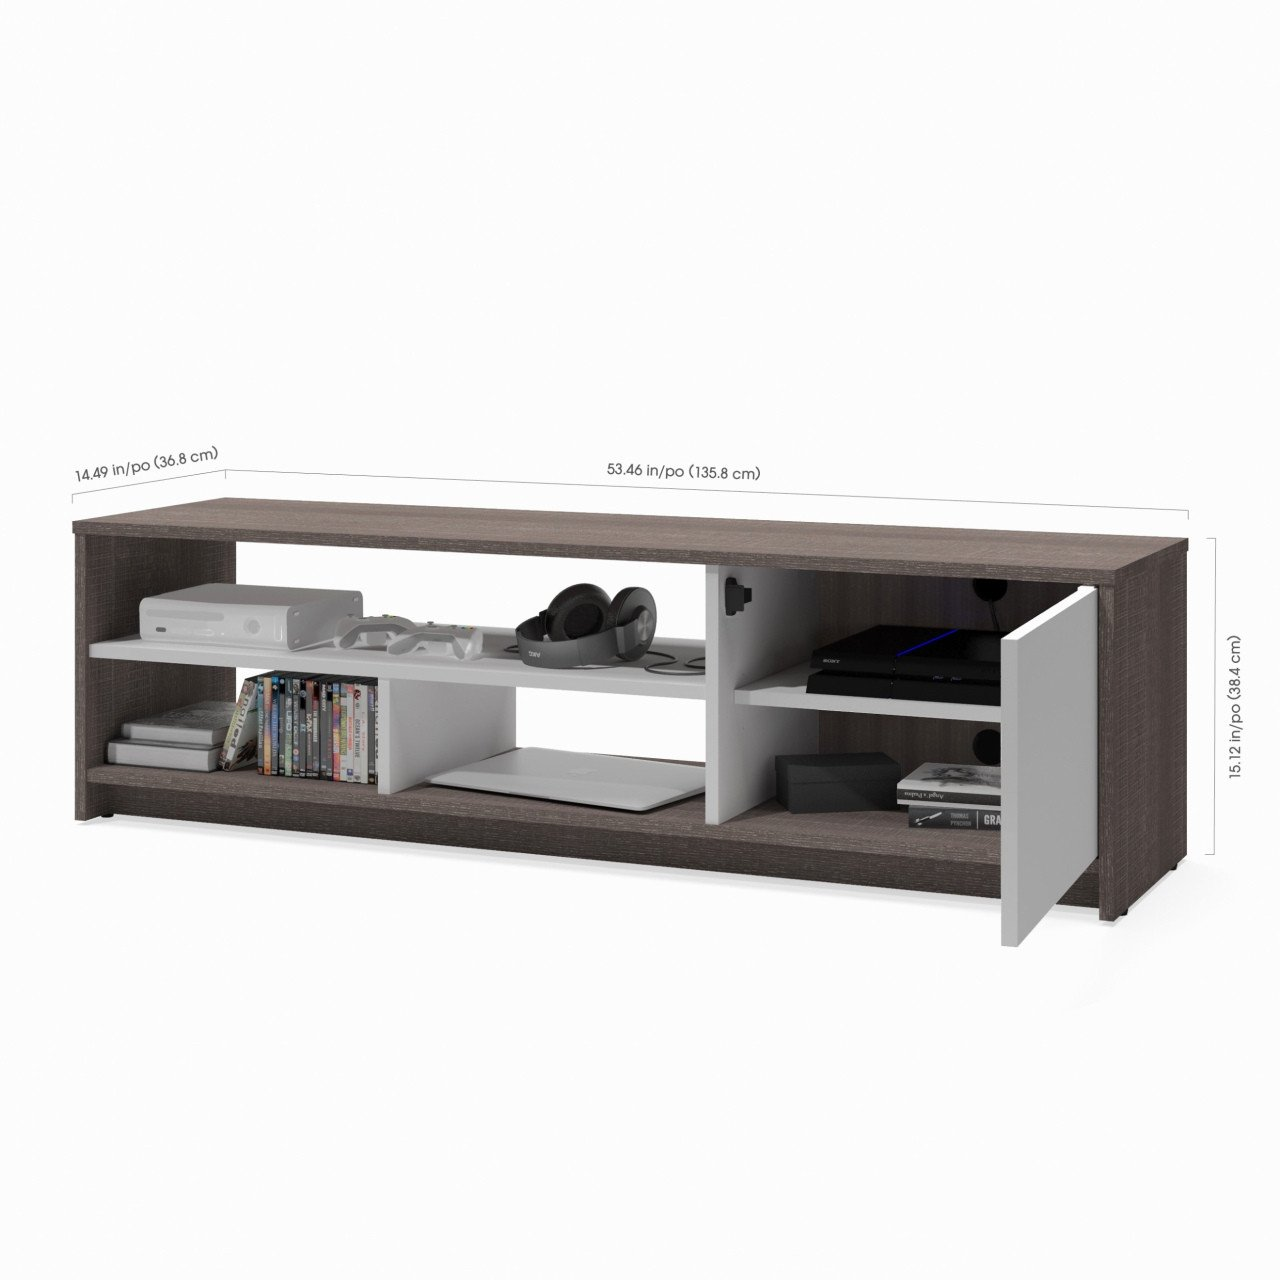 Tall Tv Stands for Bedroom Awesome Bedroom Tv Stand — Procura Home Blog